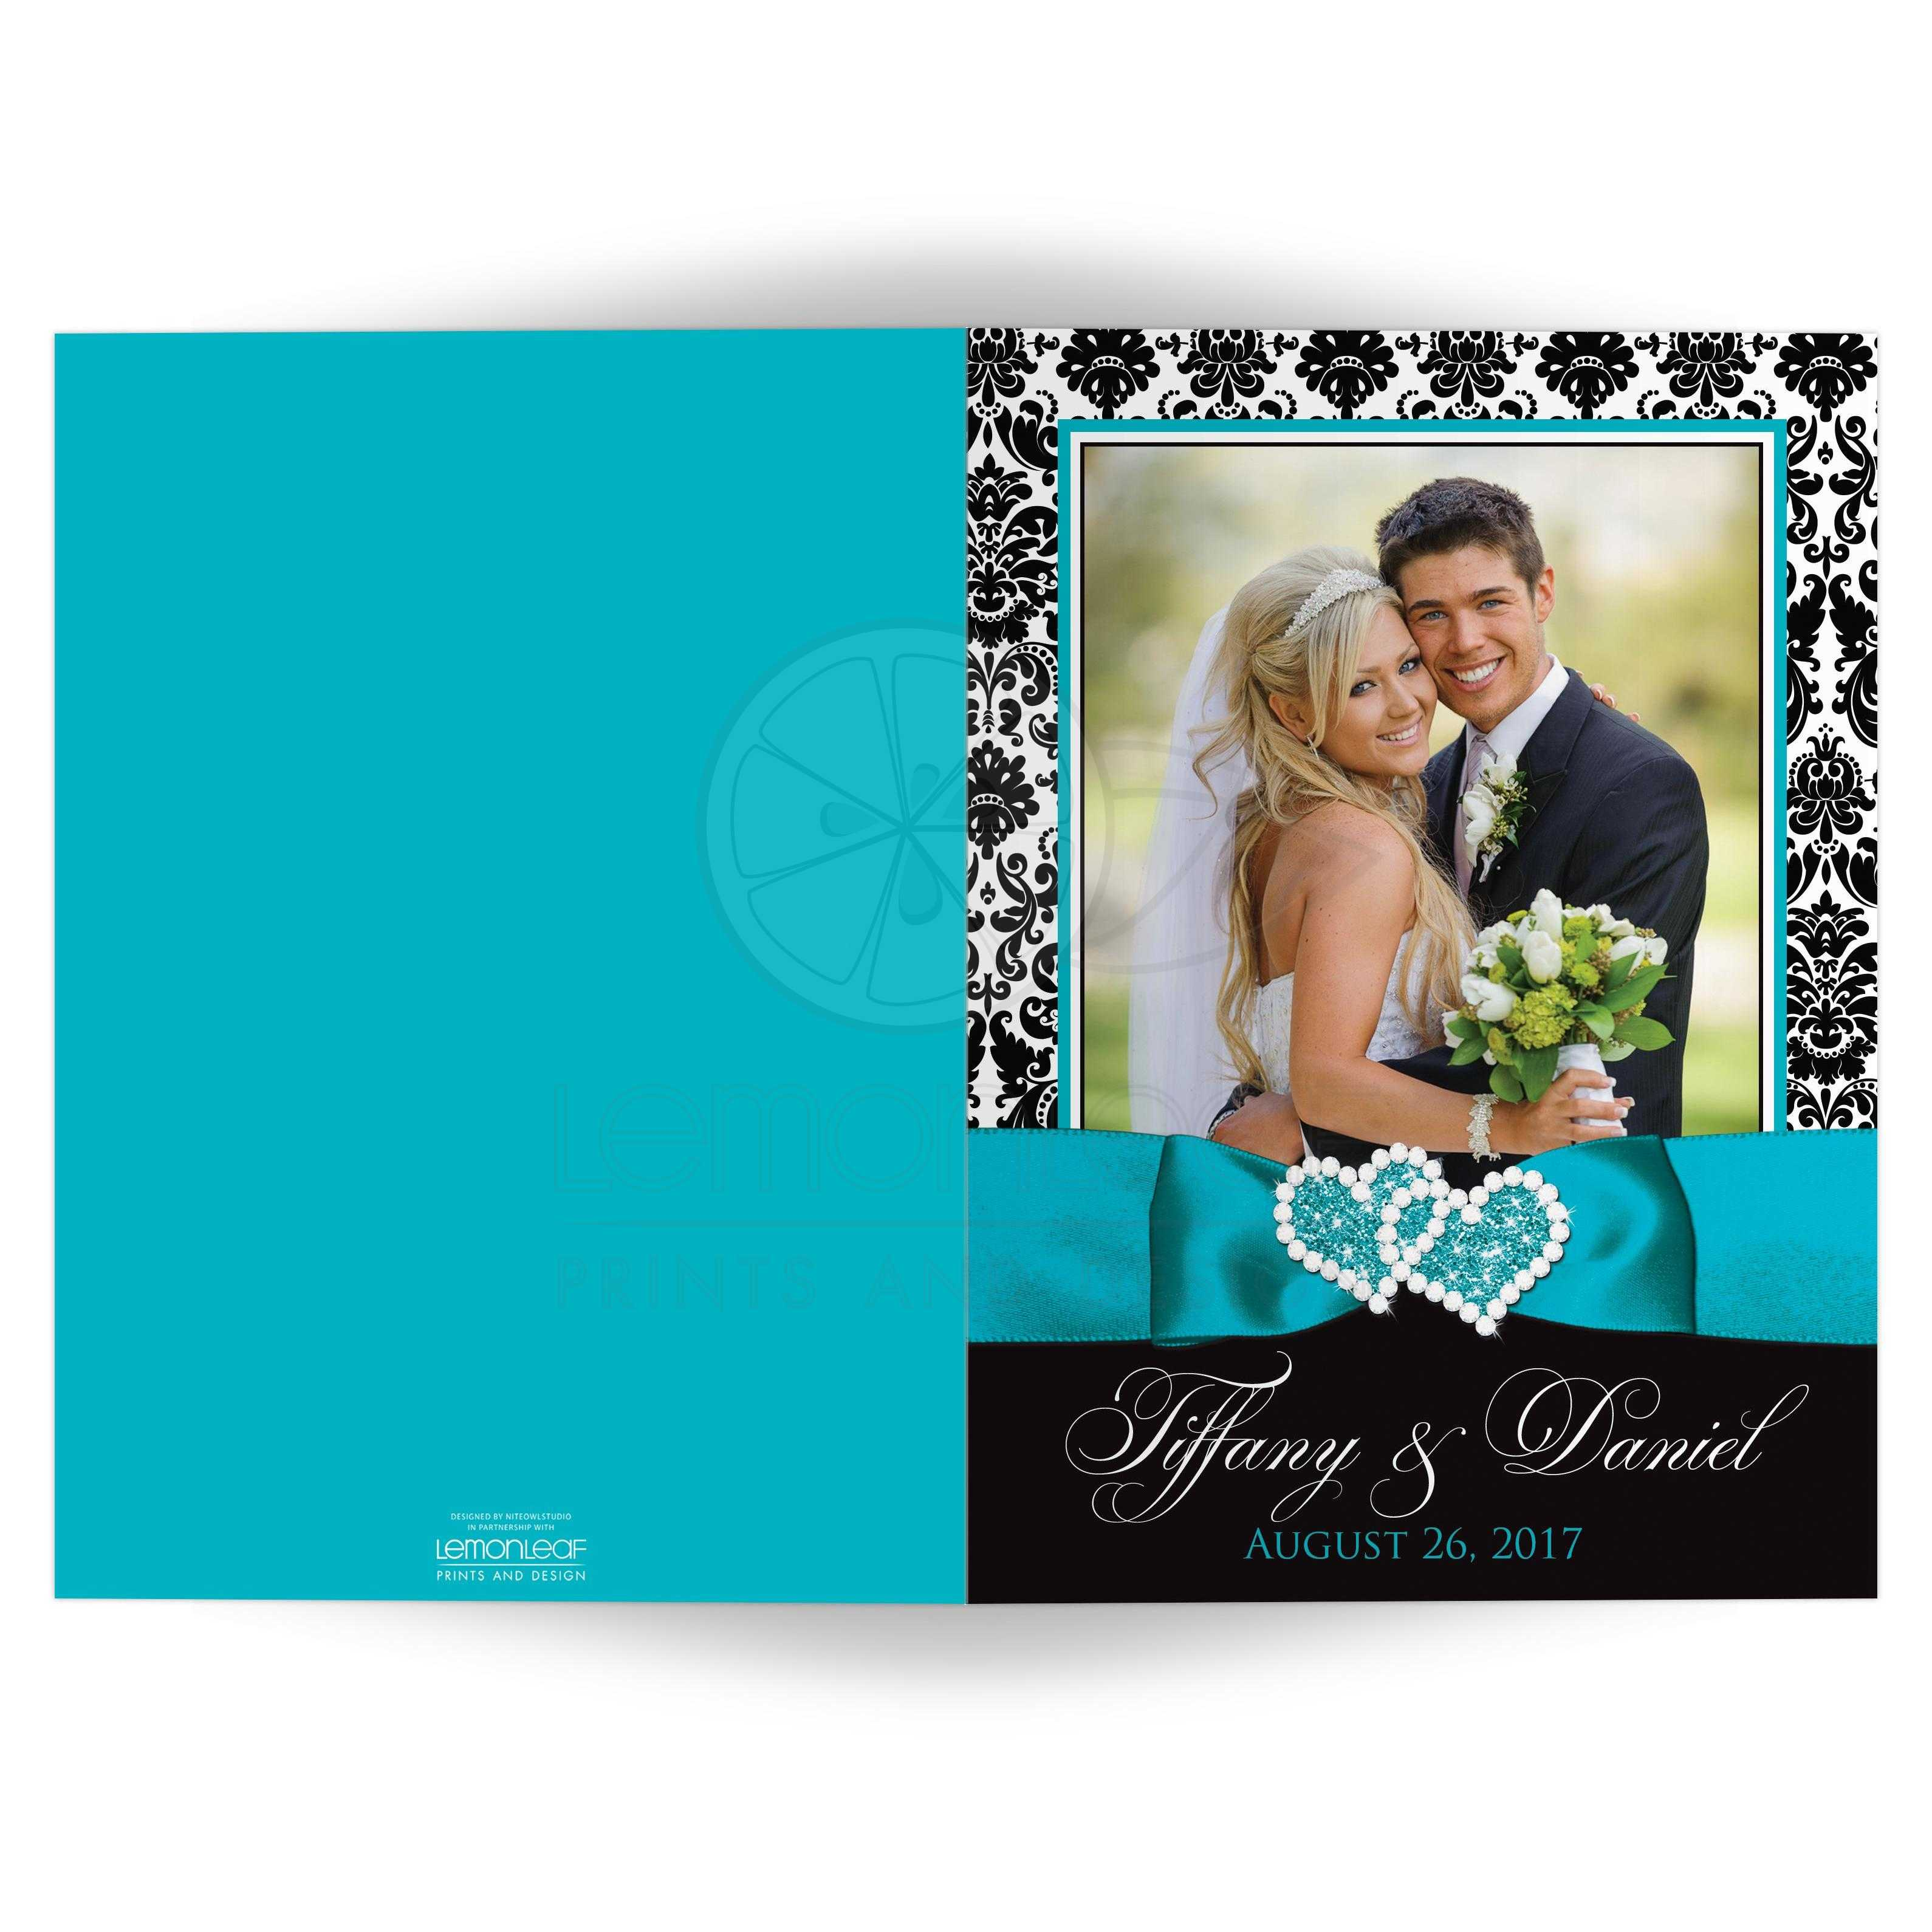 Photo wedding thank you card black and white damask printed personalized turquoise black and white damask pattern double photo template wedding thank you card junglespirit Choice Image